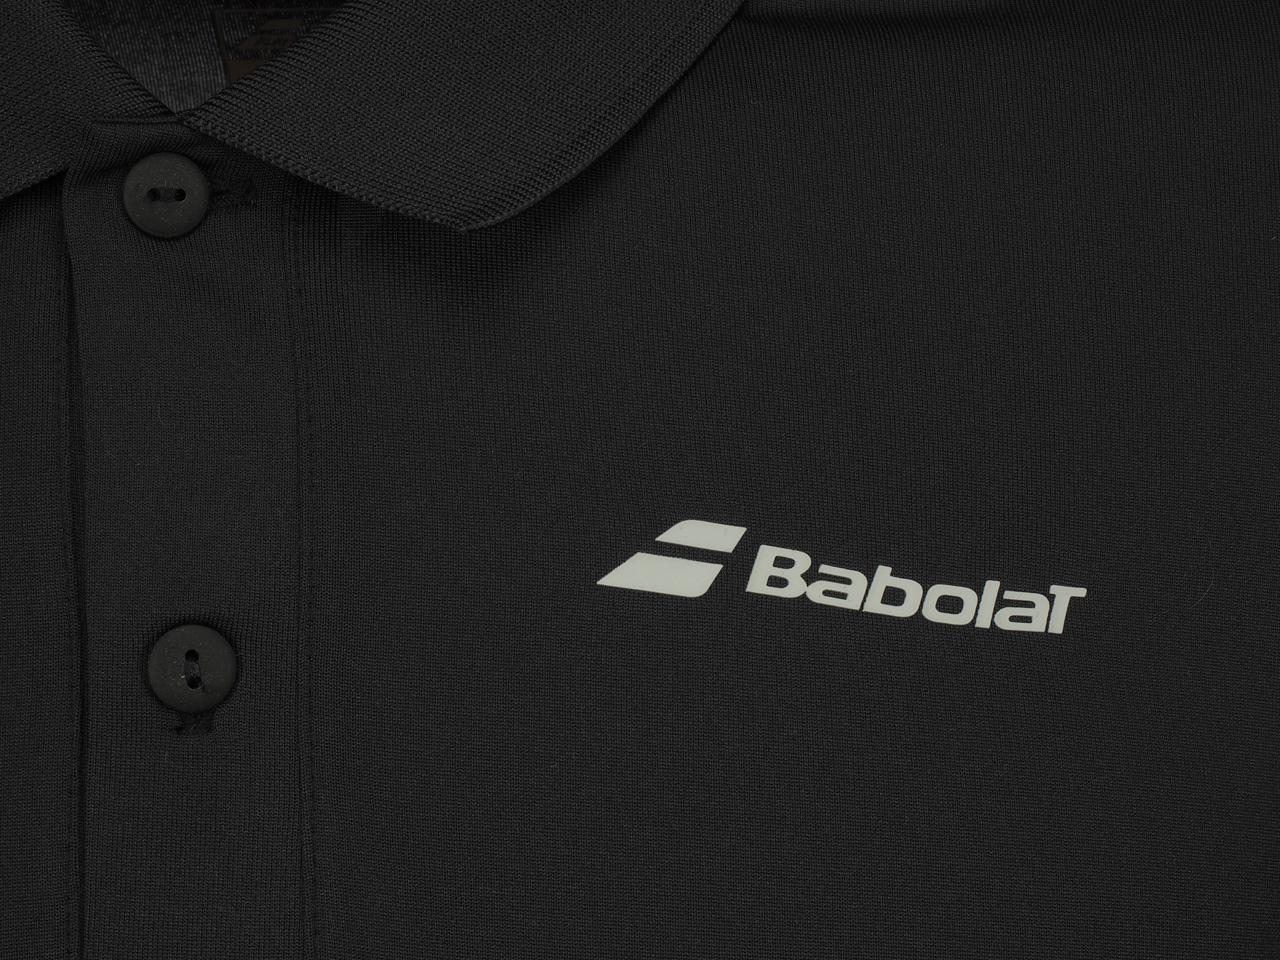 Polo-Tennis-Babolat-Polo-Pp-Core-Black-Black-70113-New thumbnail 3